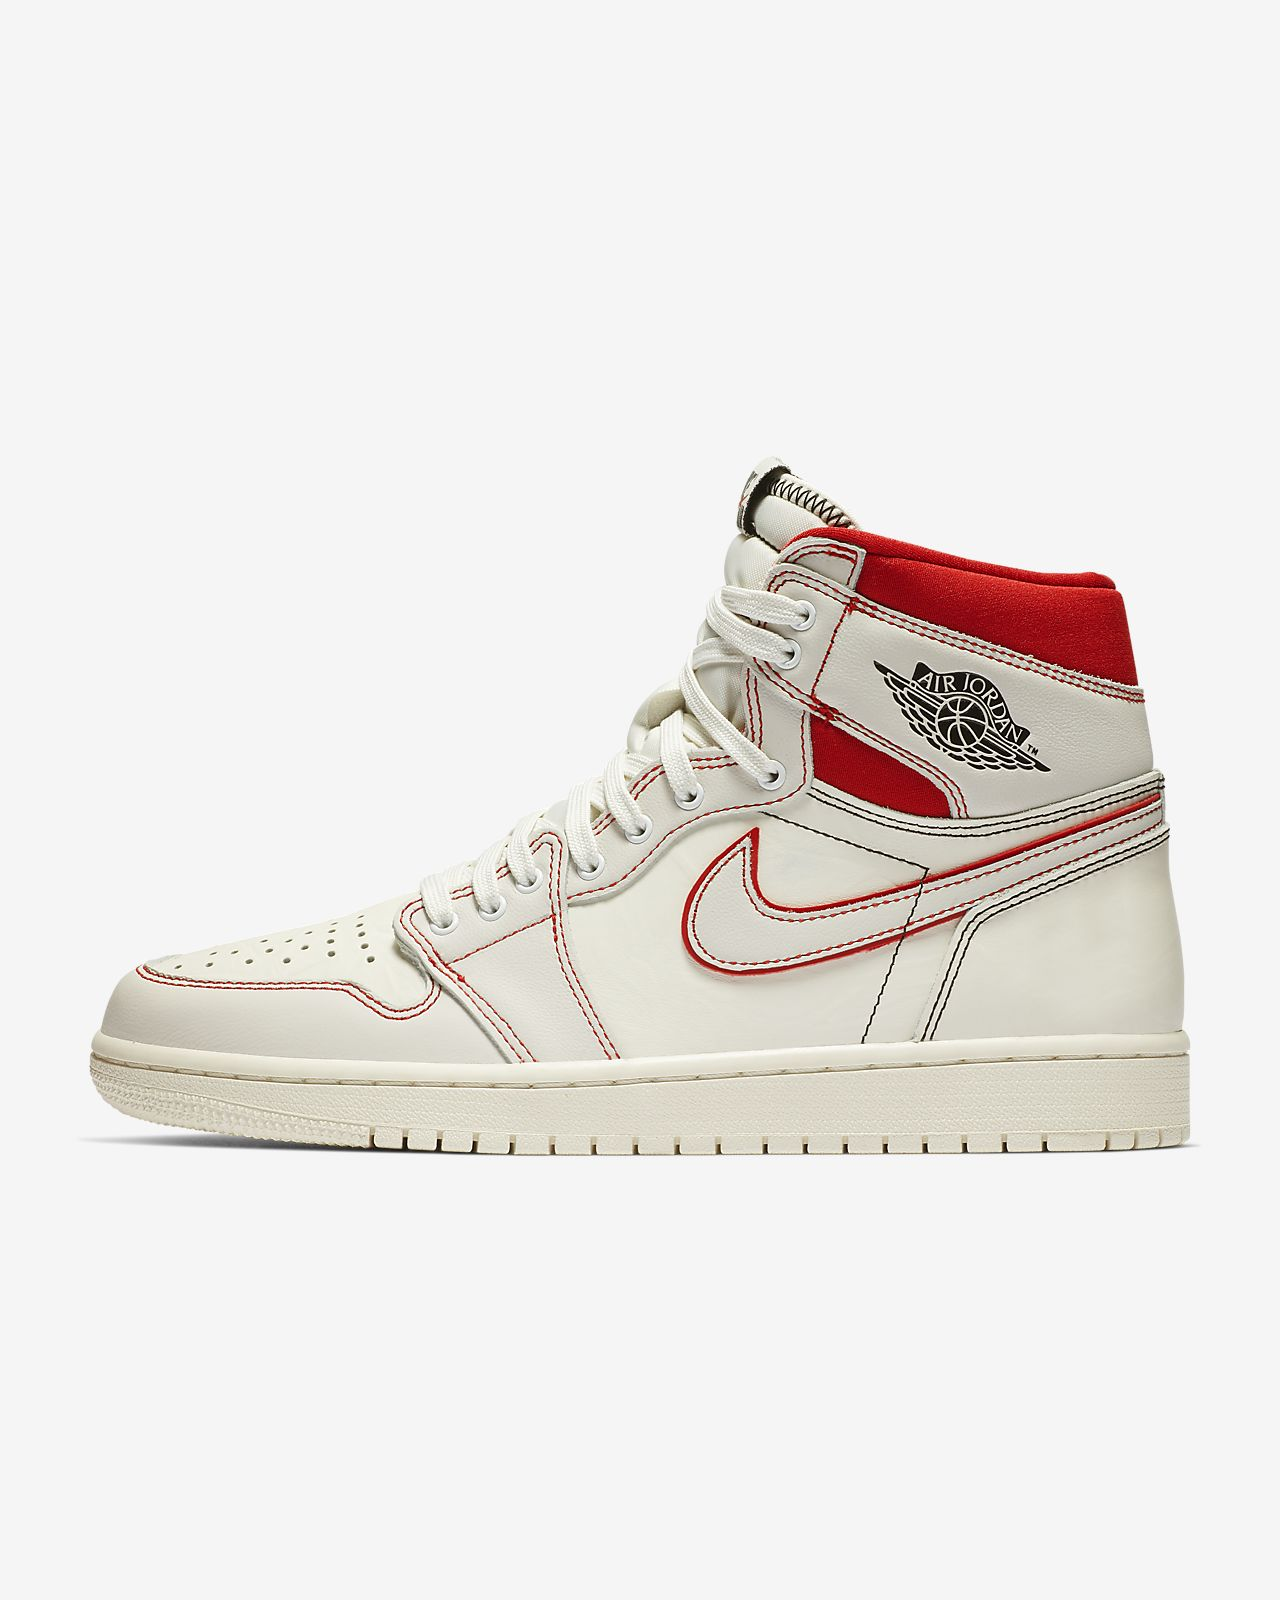 new styles d2ee8 44450 Air Jordan 1 Retro High OG Shoe